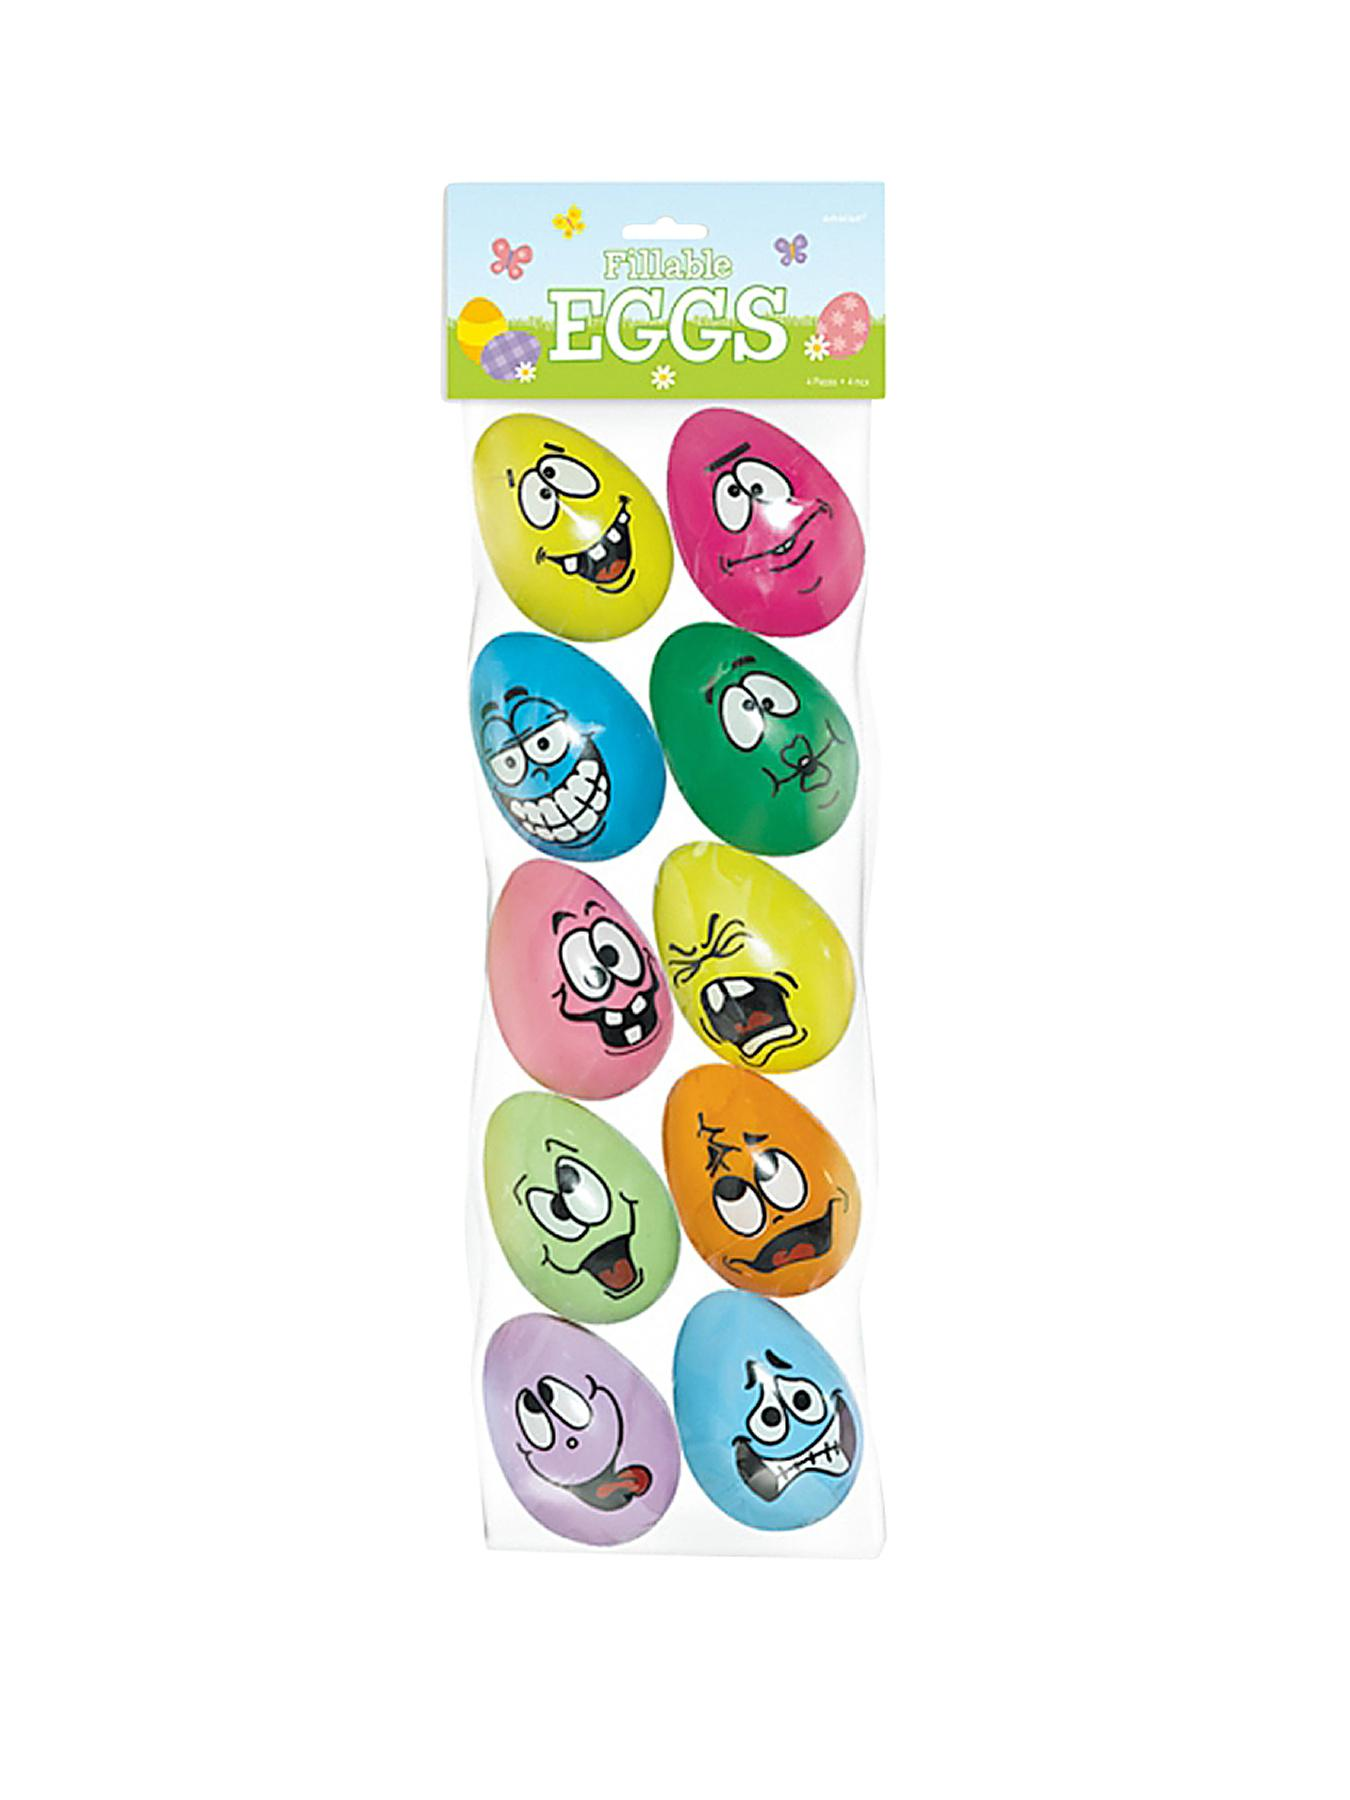 Easter Egg Hunt Crazy Eggs - Pack of 10